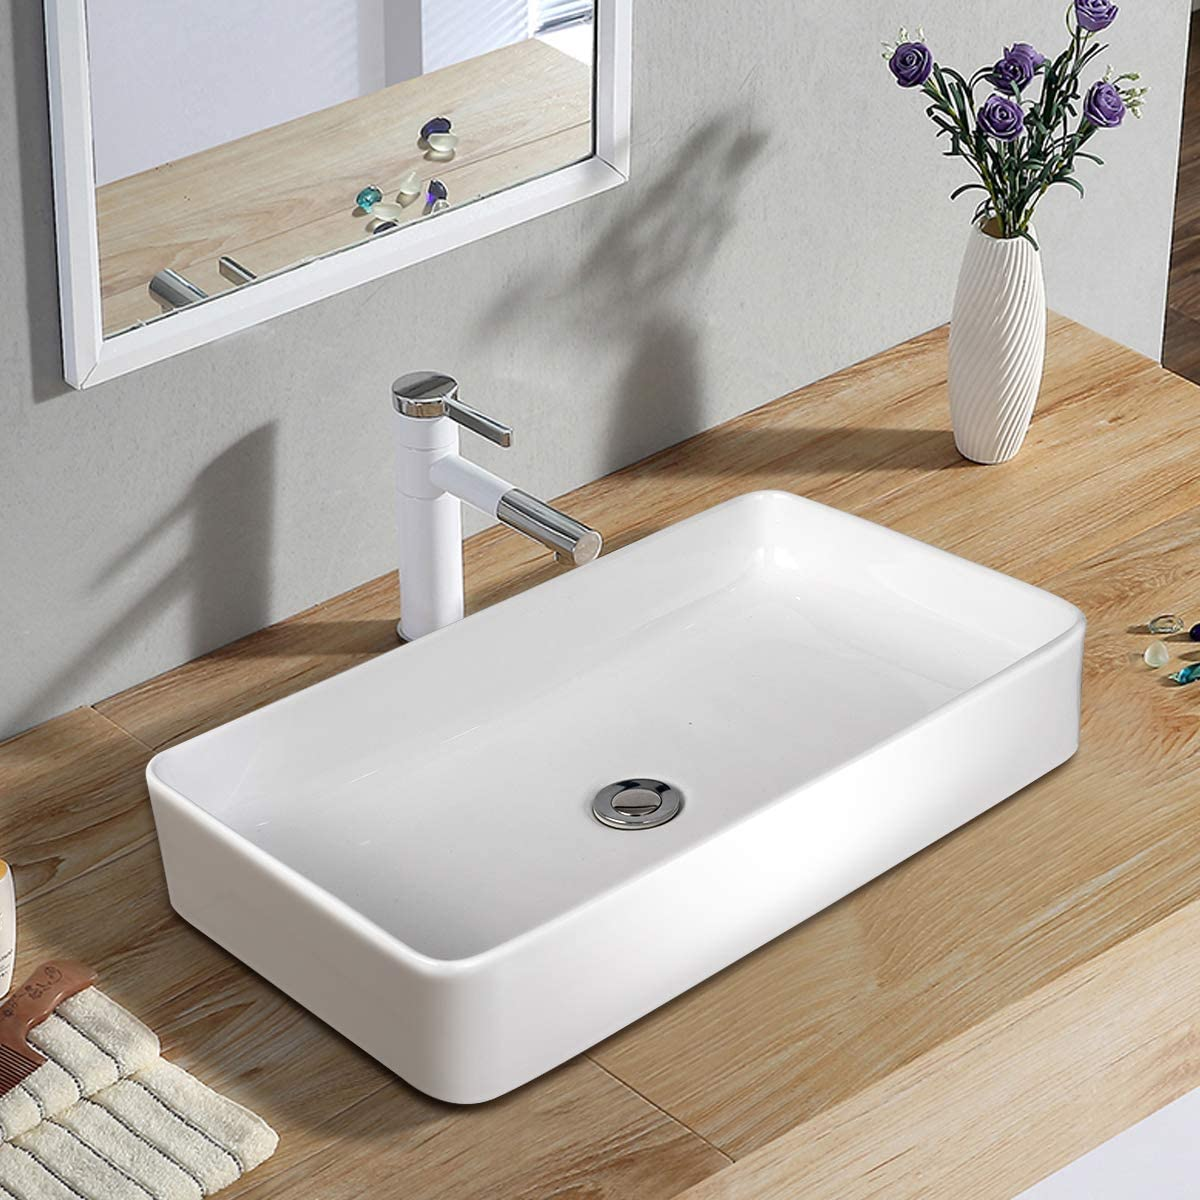 Tangkula 24 X 14 Rectangle Bathroom Vessel Sink Porcelain Porcelain Ceramic Above Counter Basin Vessel Vanity Sink Art Basin With Pop Up Drain Ideal For Home Restaurant And Hotel White Amazon Co Uk Diy Tools